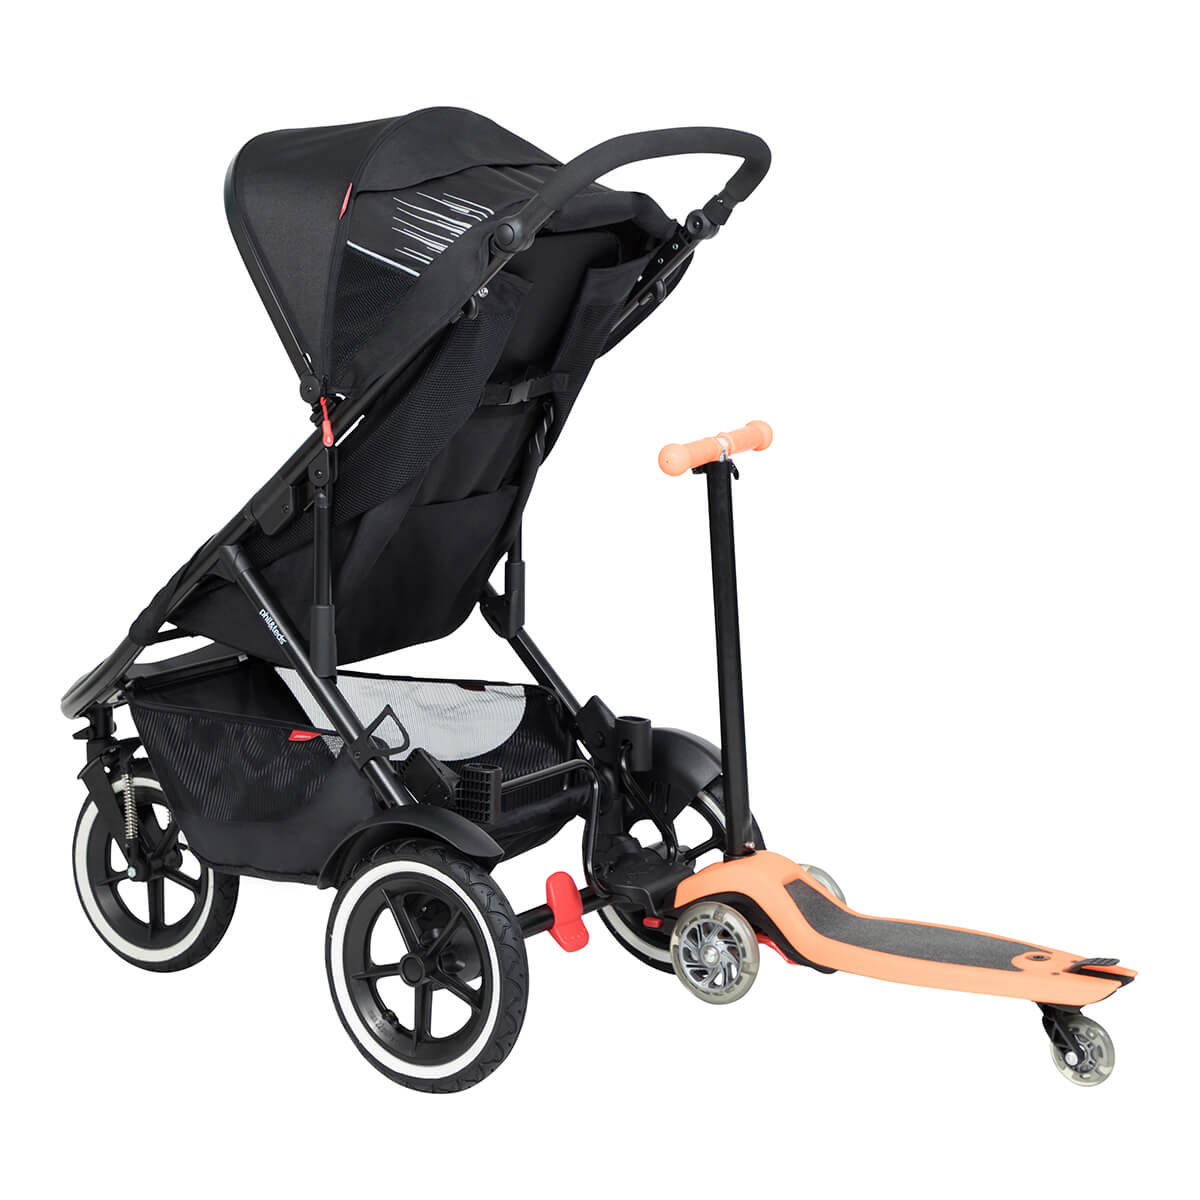 https://cdn.accentuate.io/4513462255712/19440099852472/philteds-sport-buggy-with-freerider-stroller-board-in-rear-v1626486498604.jpg?1200x1200